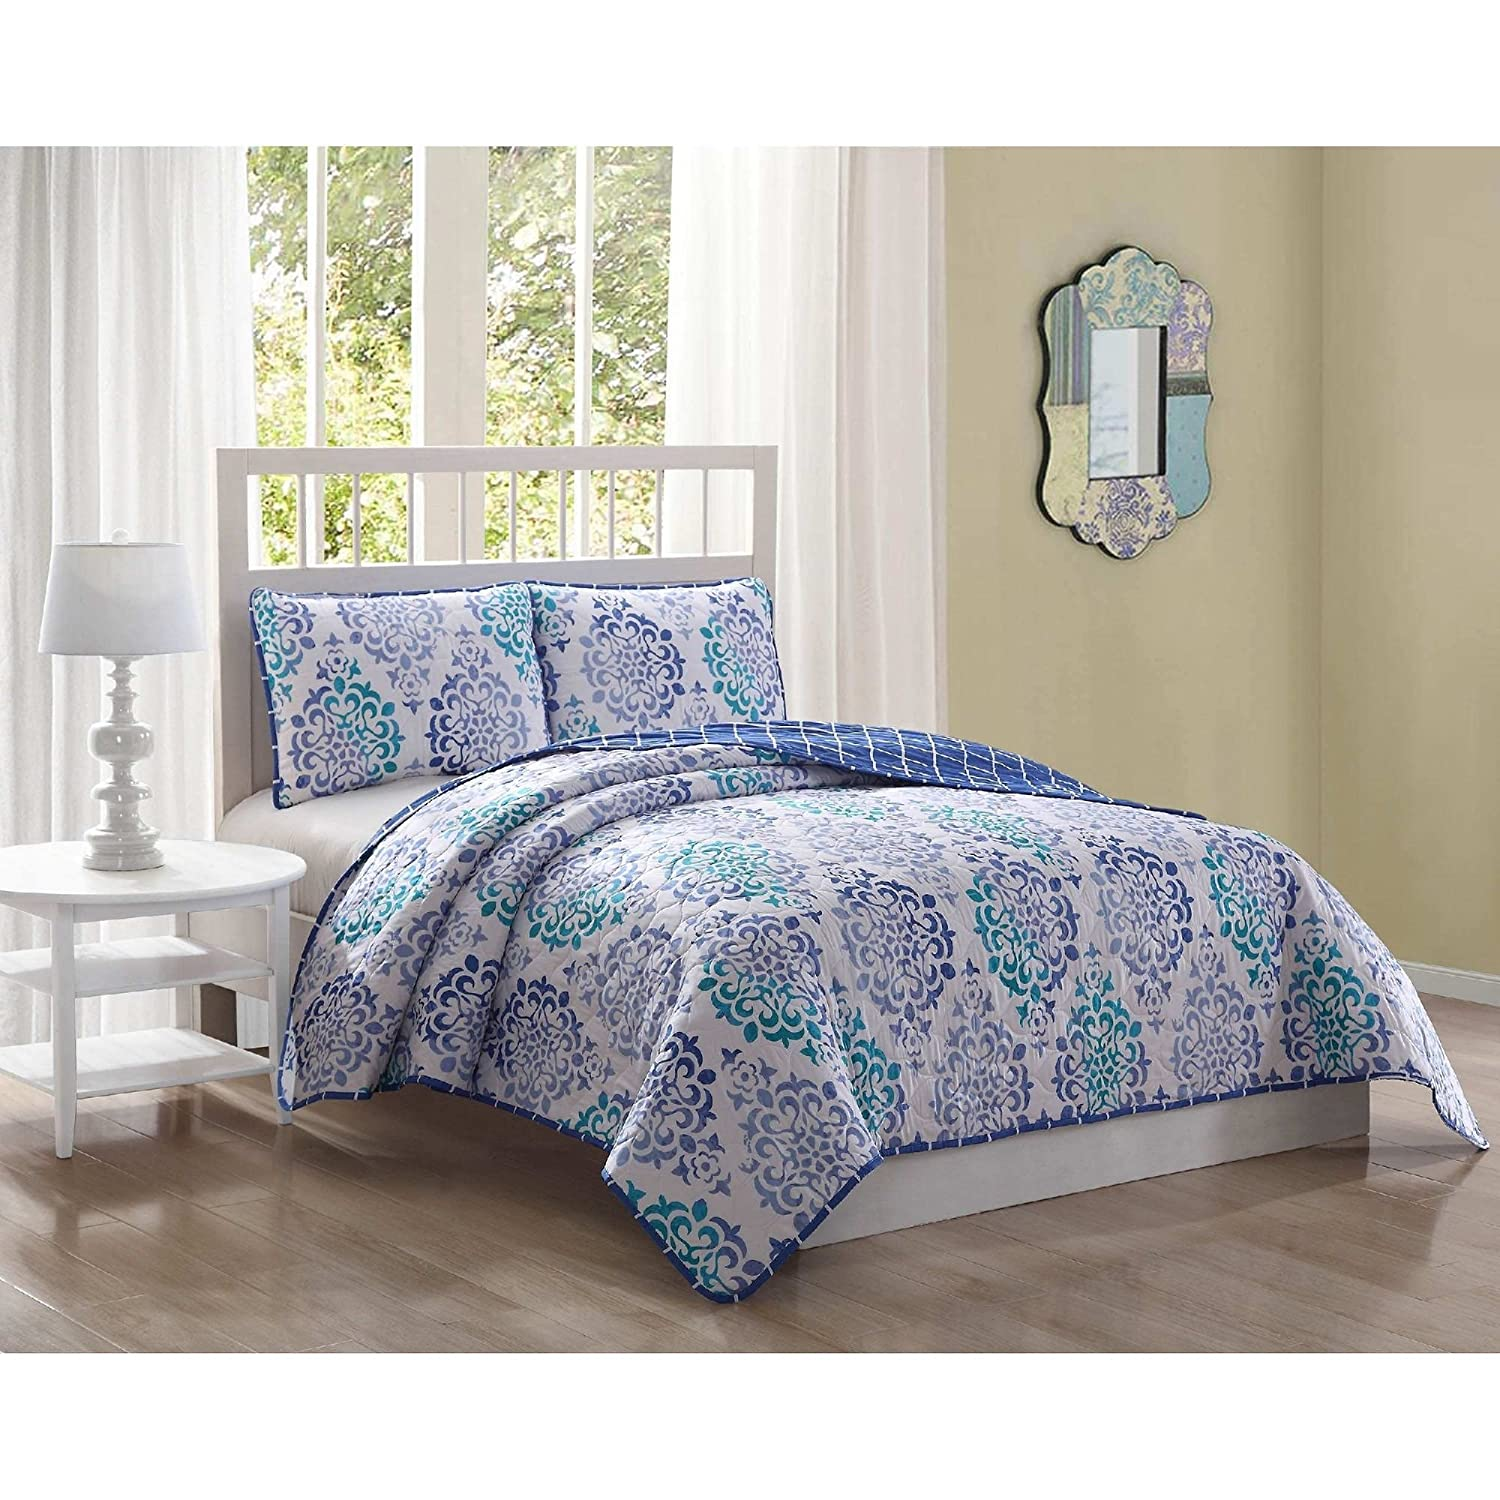 3 Piece Exotic Floral Medallion Design Reversible Quilt Set Queen Size, Printed Tribal Bohemian Flowers Bedding, Modern Reverse Geometric Checks Checkered Themed, Graphic Nature Pattern, Teal, Purple